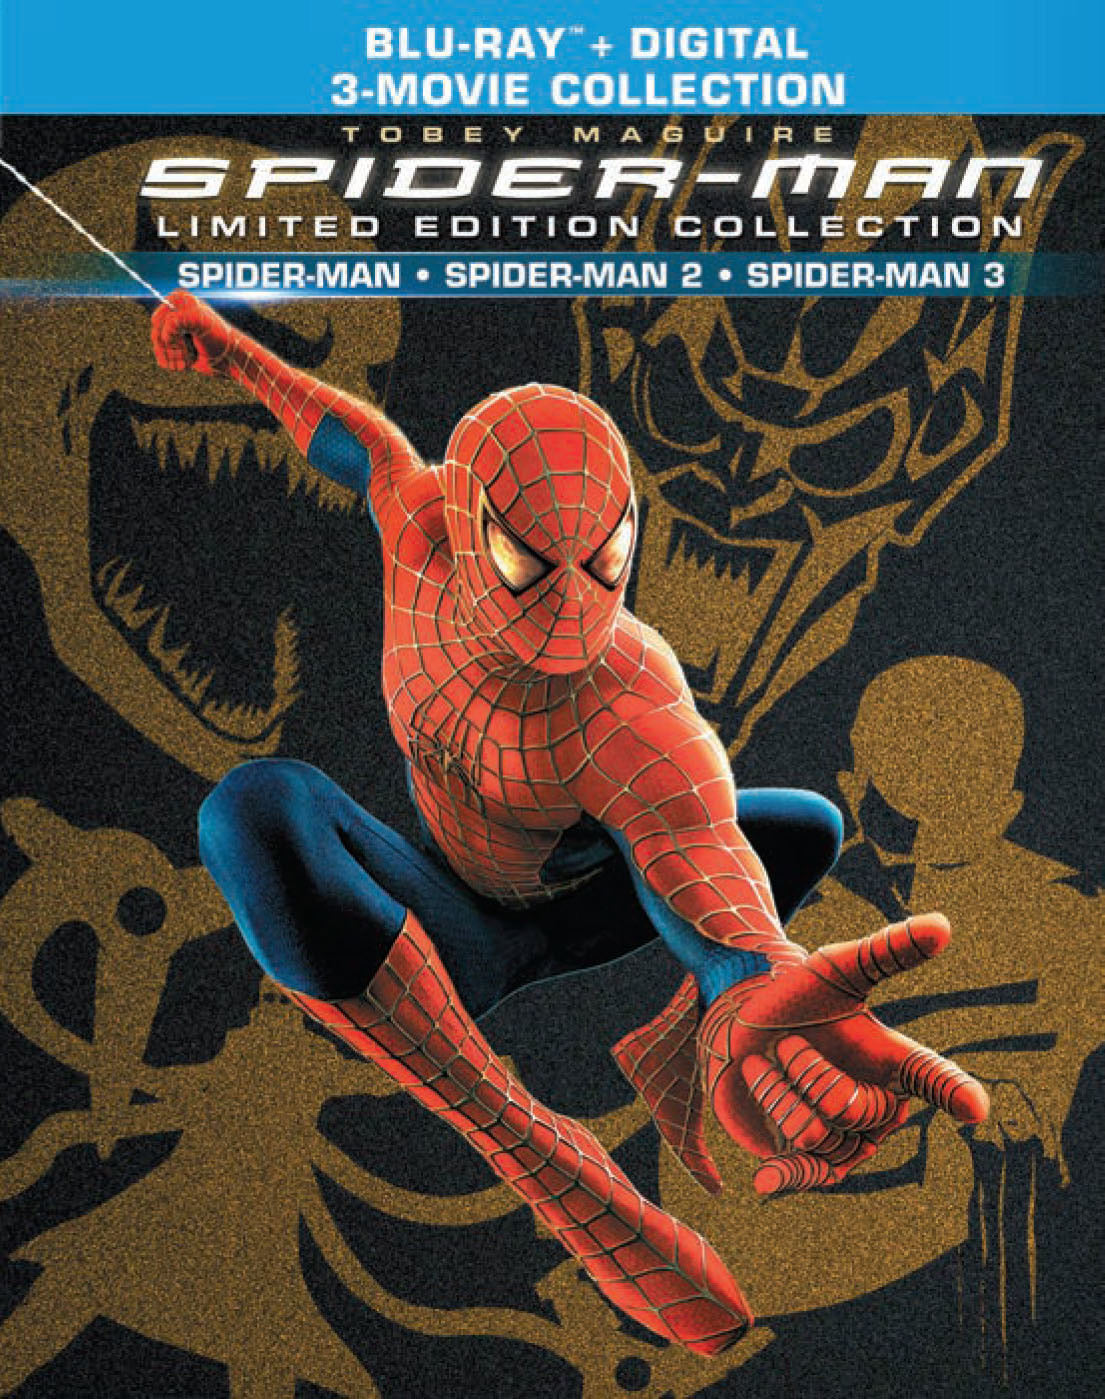 Spider-Man Trilogy Vudu or Movies Anywhere HD code